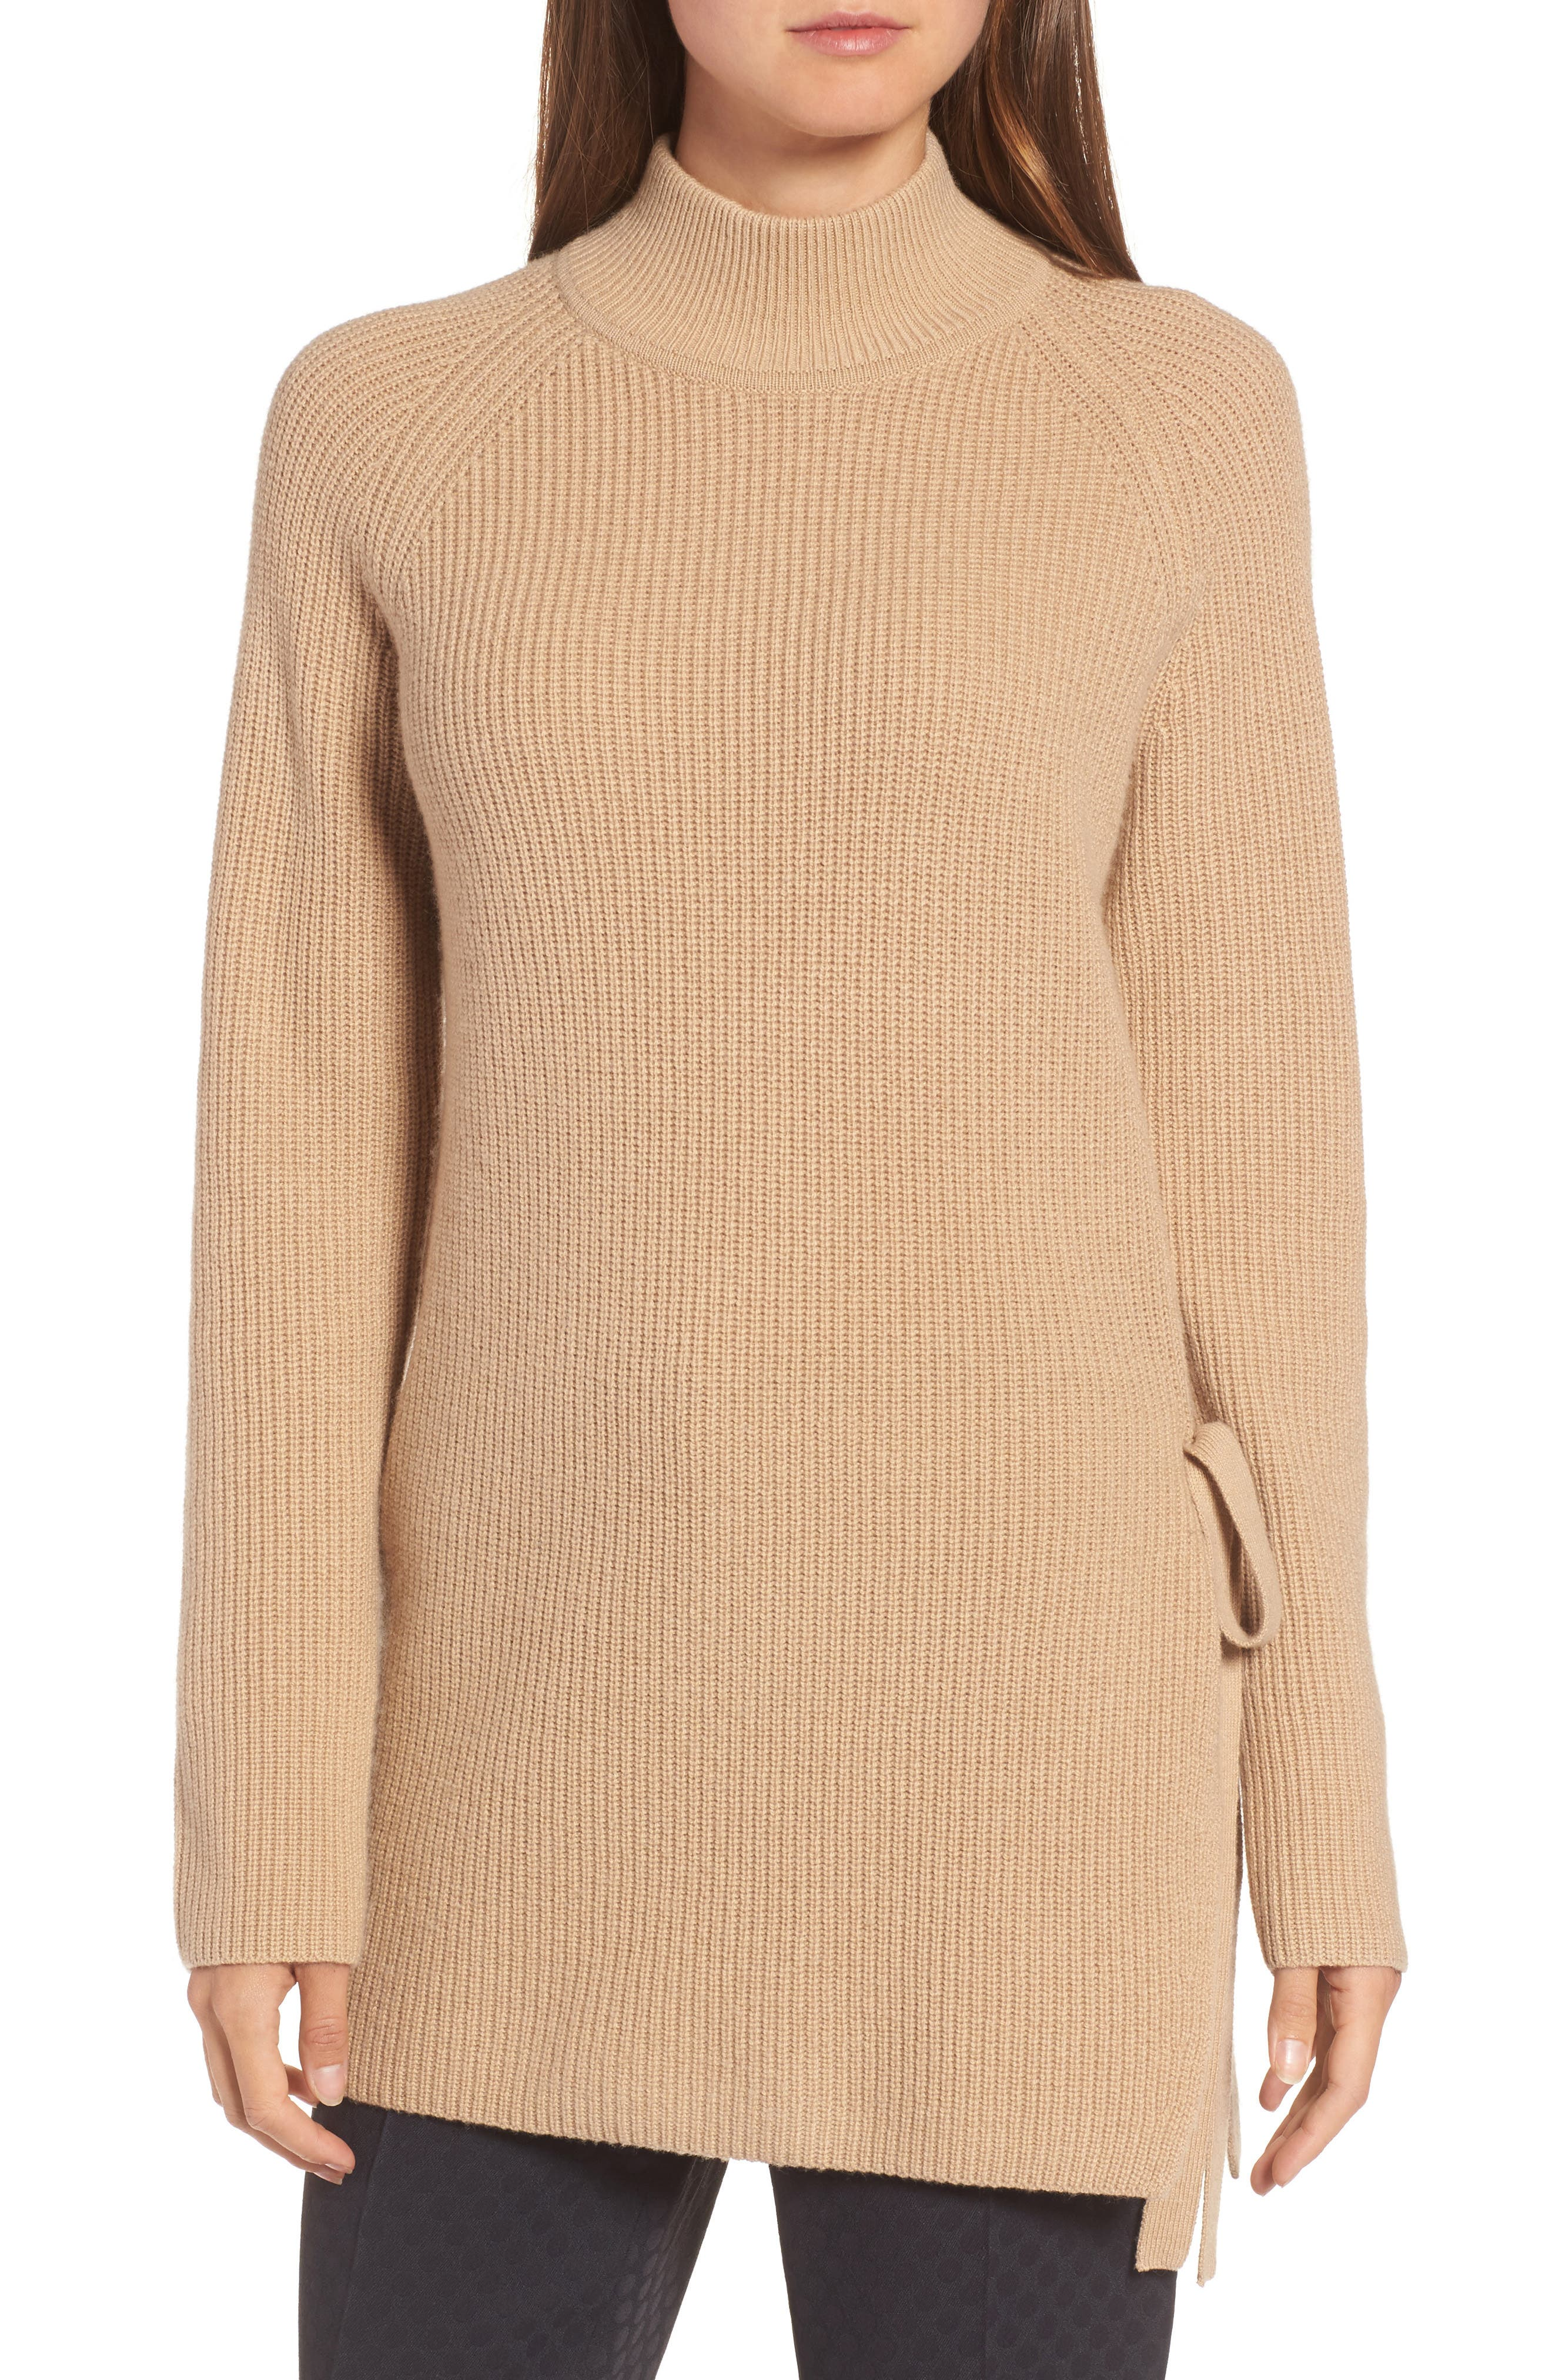 Filda Tie Side Sweater,                             Main thumbnail 1, color,